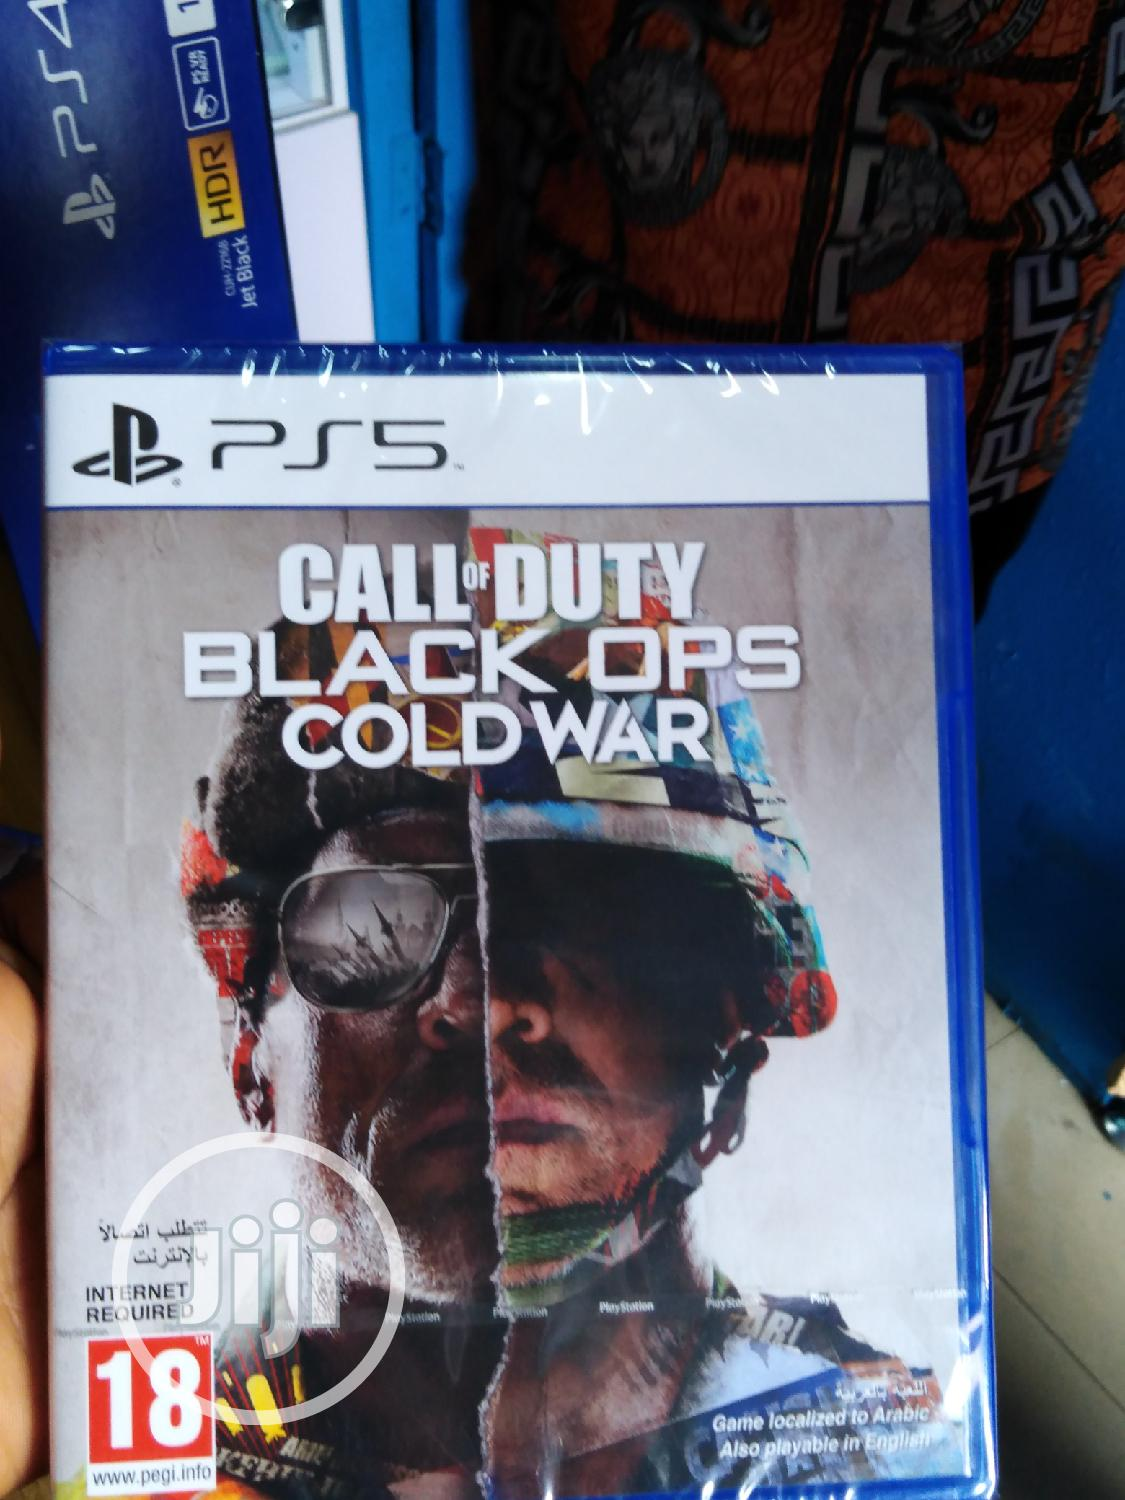 Archive: Brand New PS5 CD Call of Duty Black Ops COLD WAR